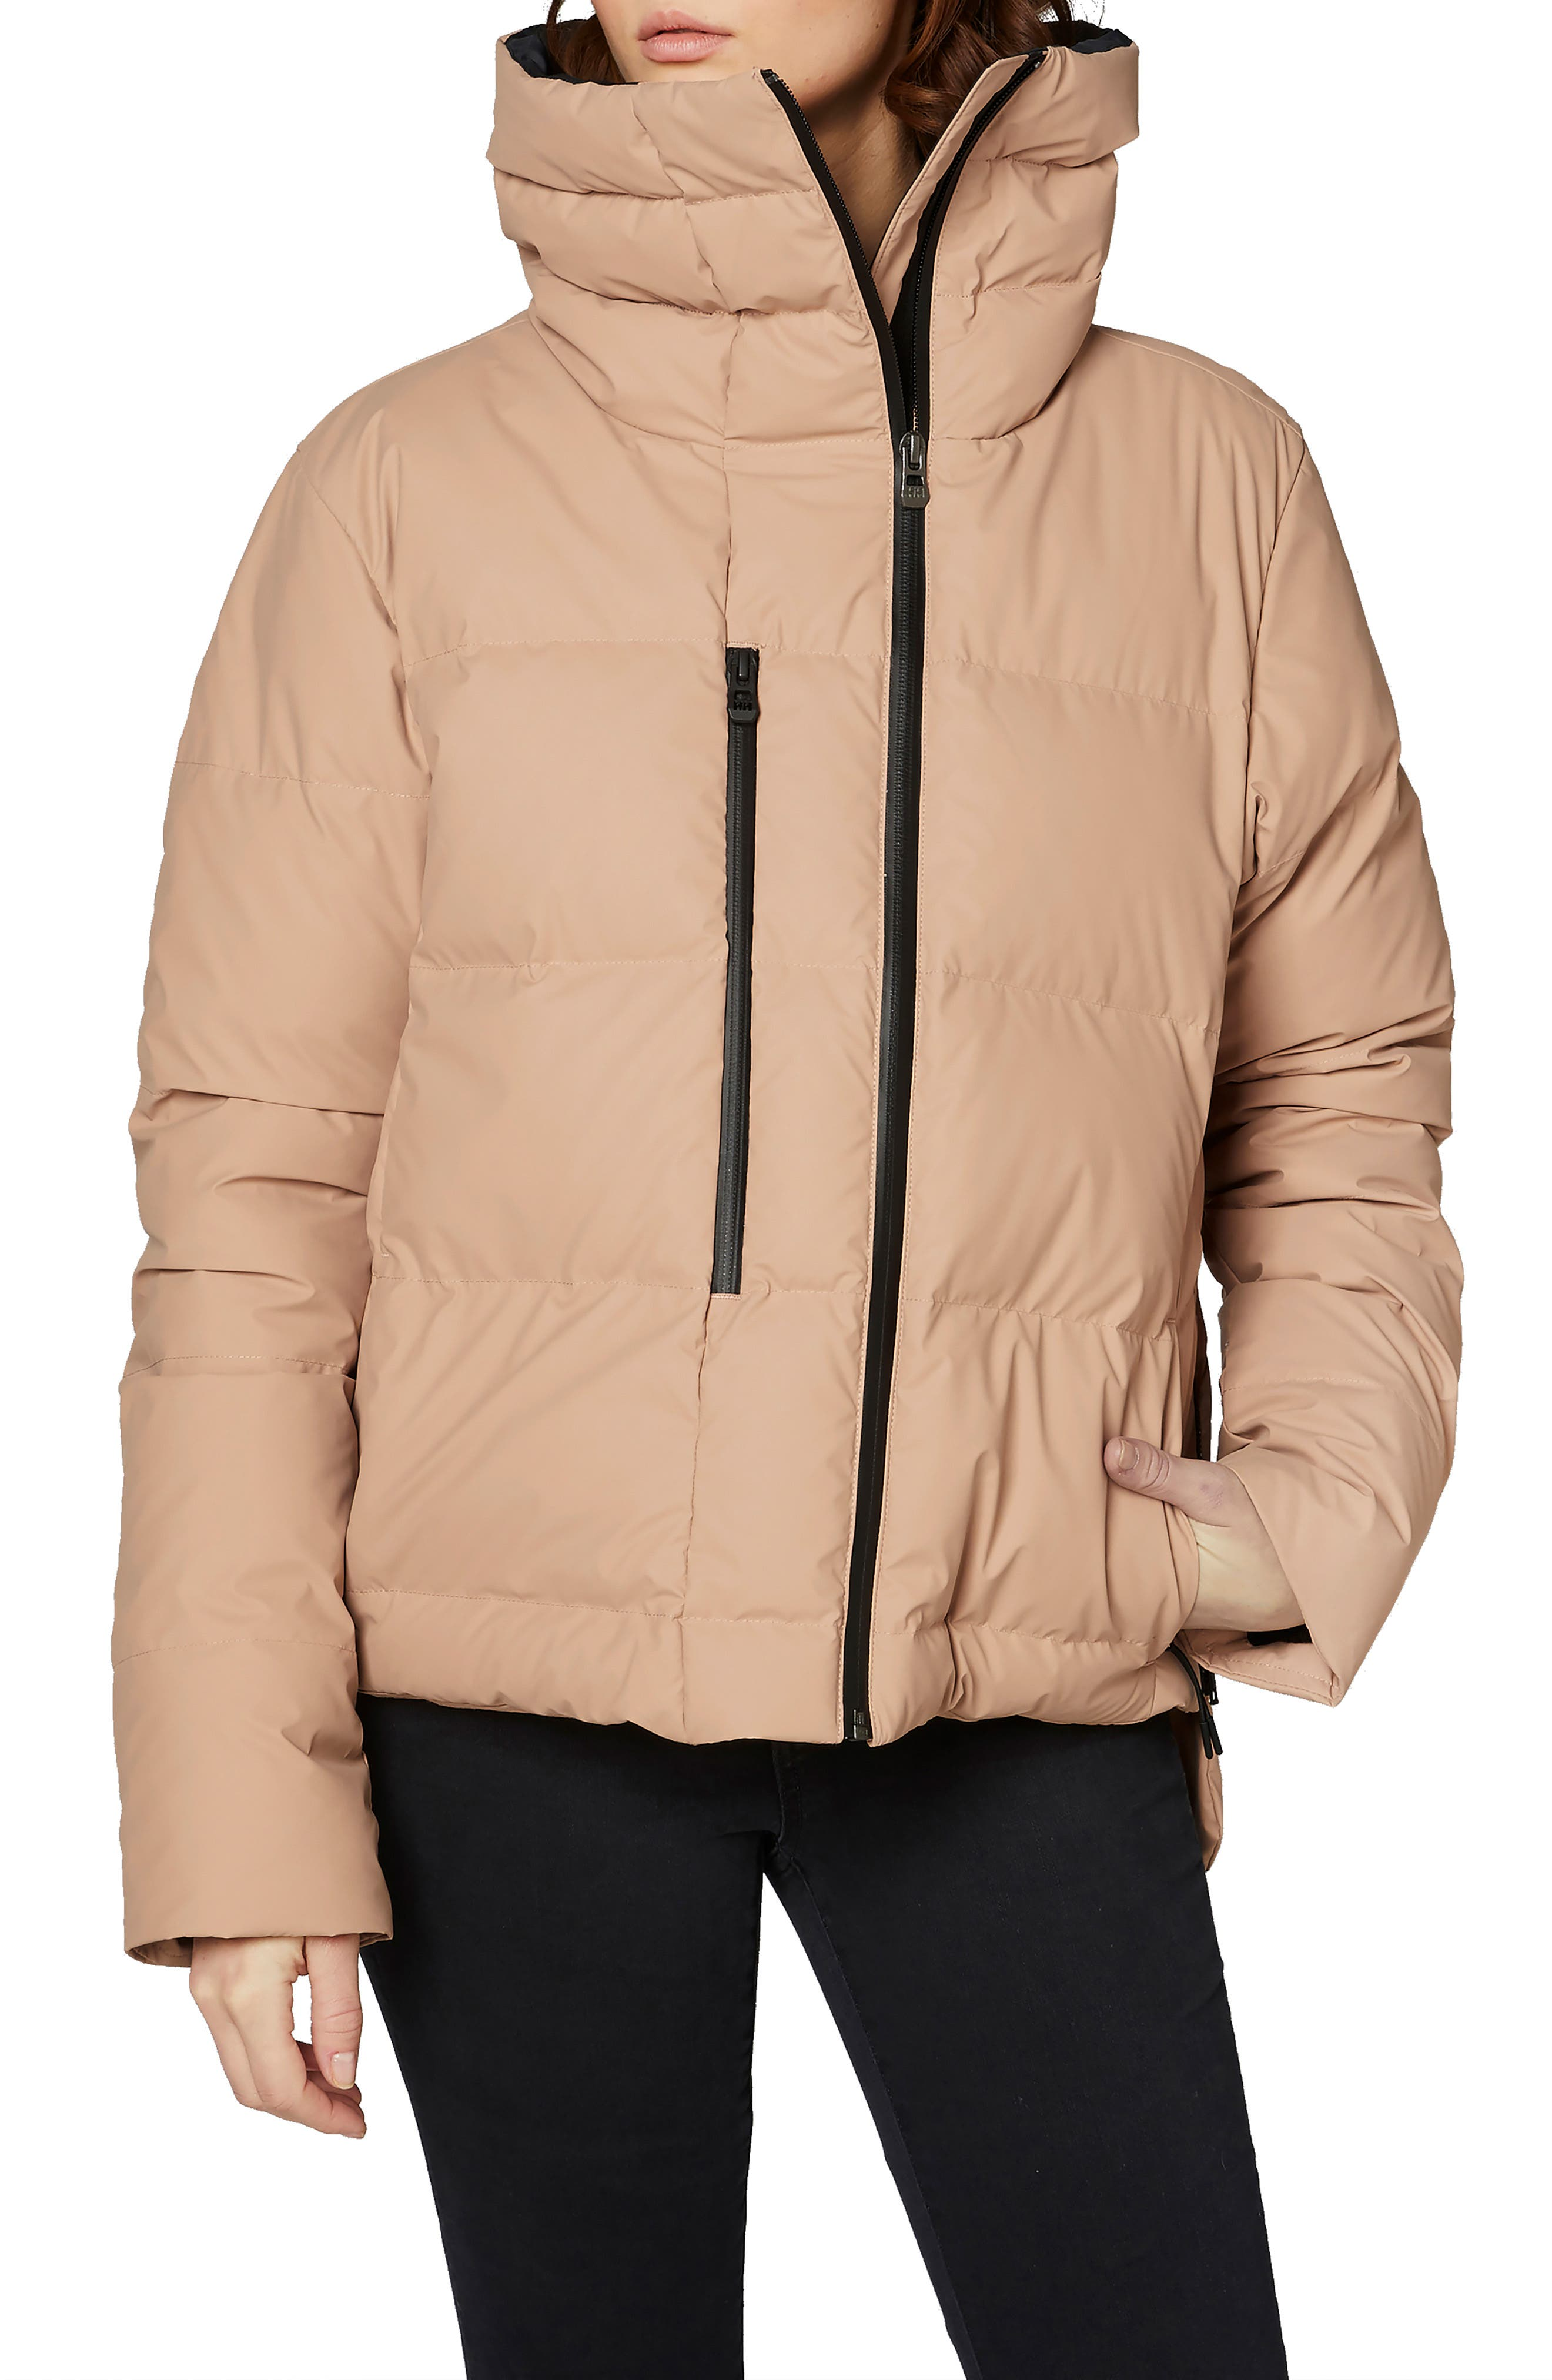 Beloved Water Repellent Puffer Jacket,                             Main thumbnail 1, color,                             950